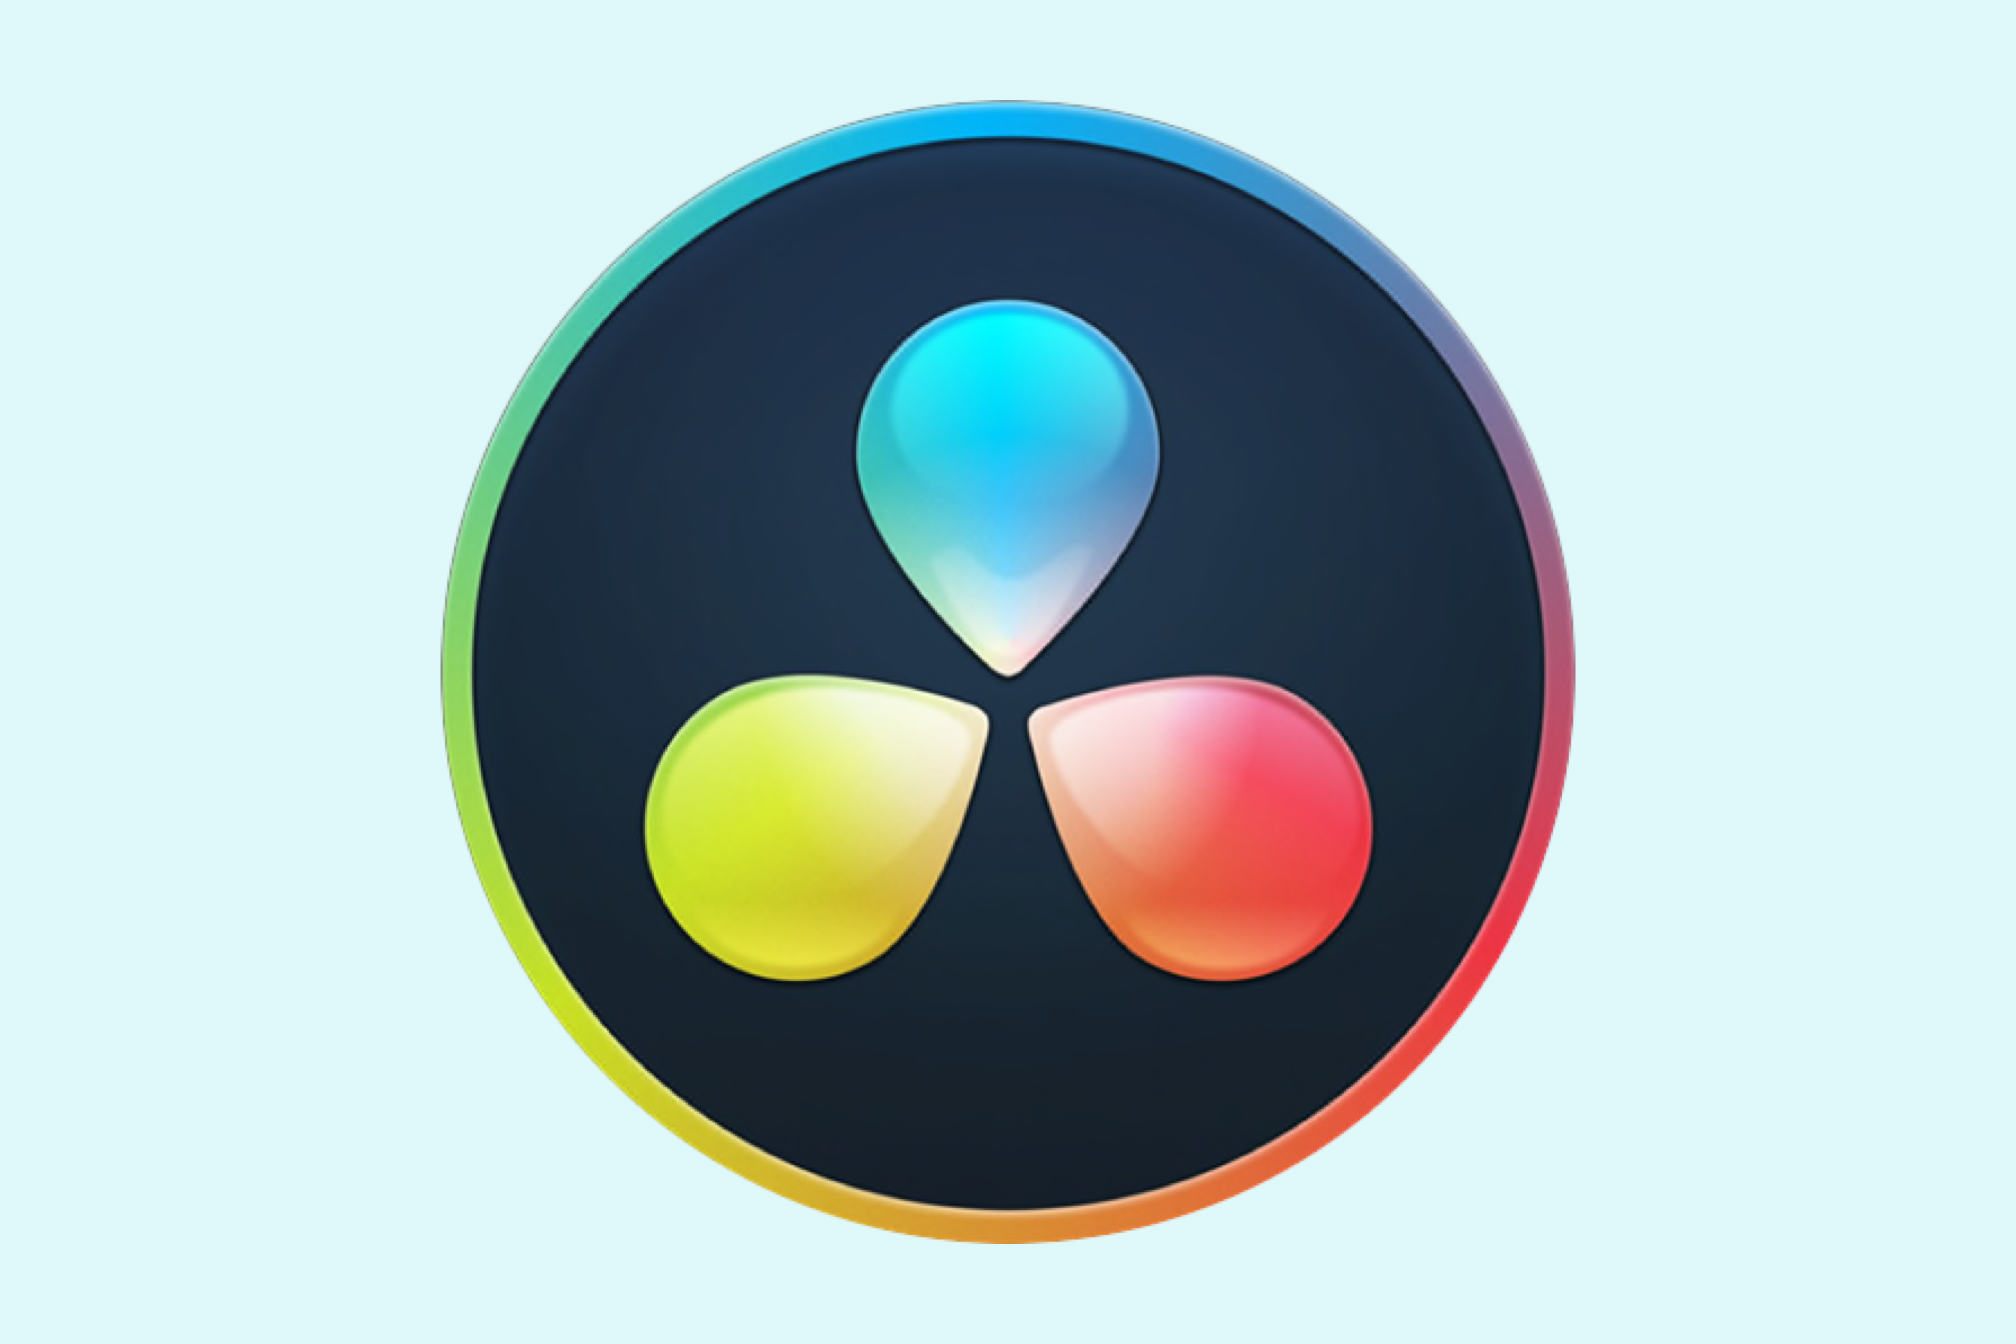 — OPTION C —DaVinci Resolve - ▾ REQUIRED CLASSES ▾Intro to DaVinci Resolve (12 hours)DaVinci Resolve: Color Correction (12 hours)